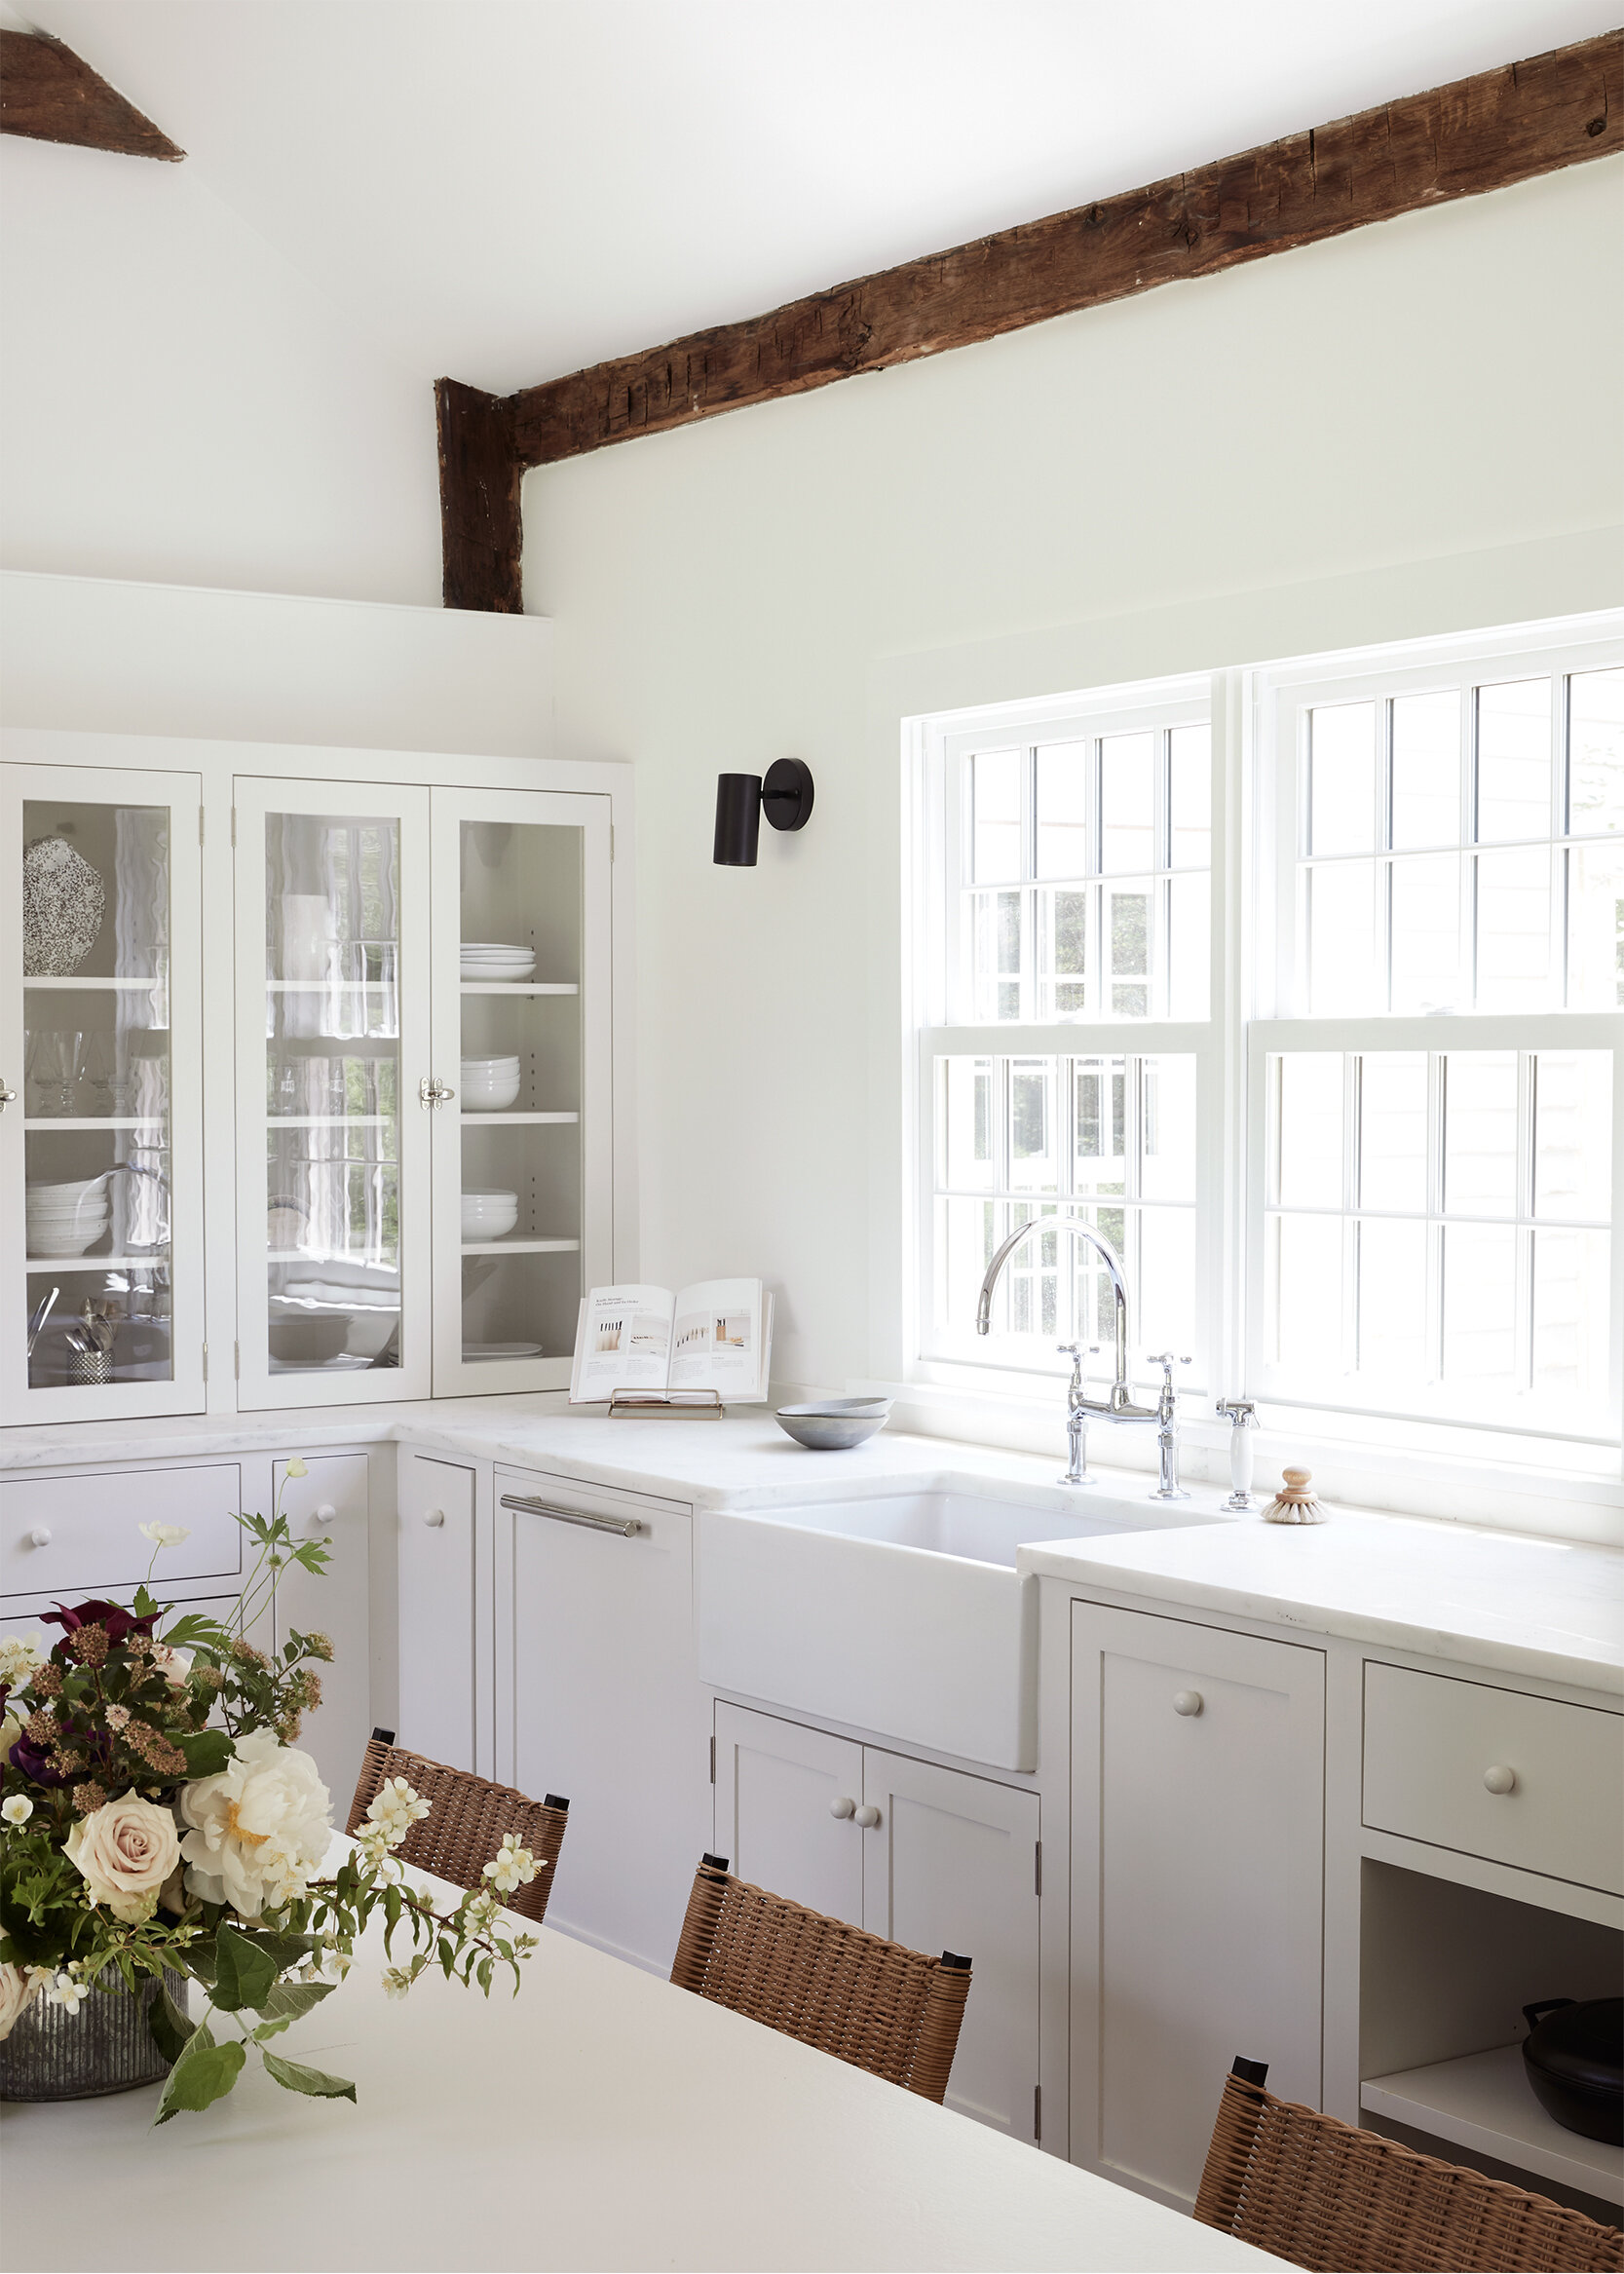 nune_Bruey Cottage_kitchen_02.jpg